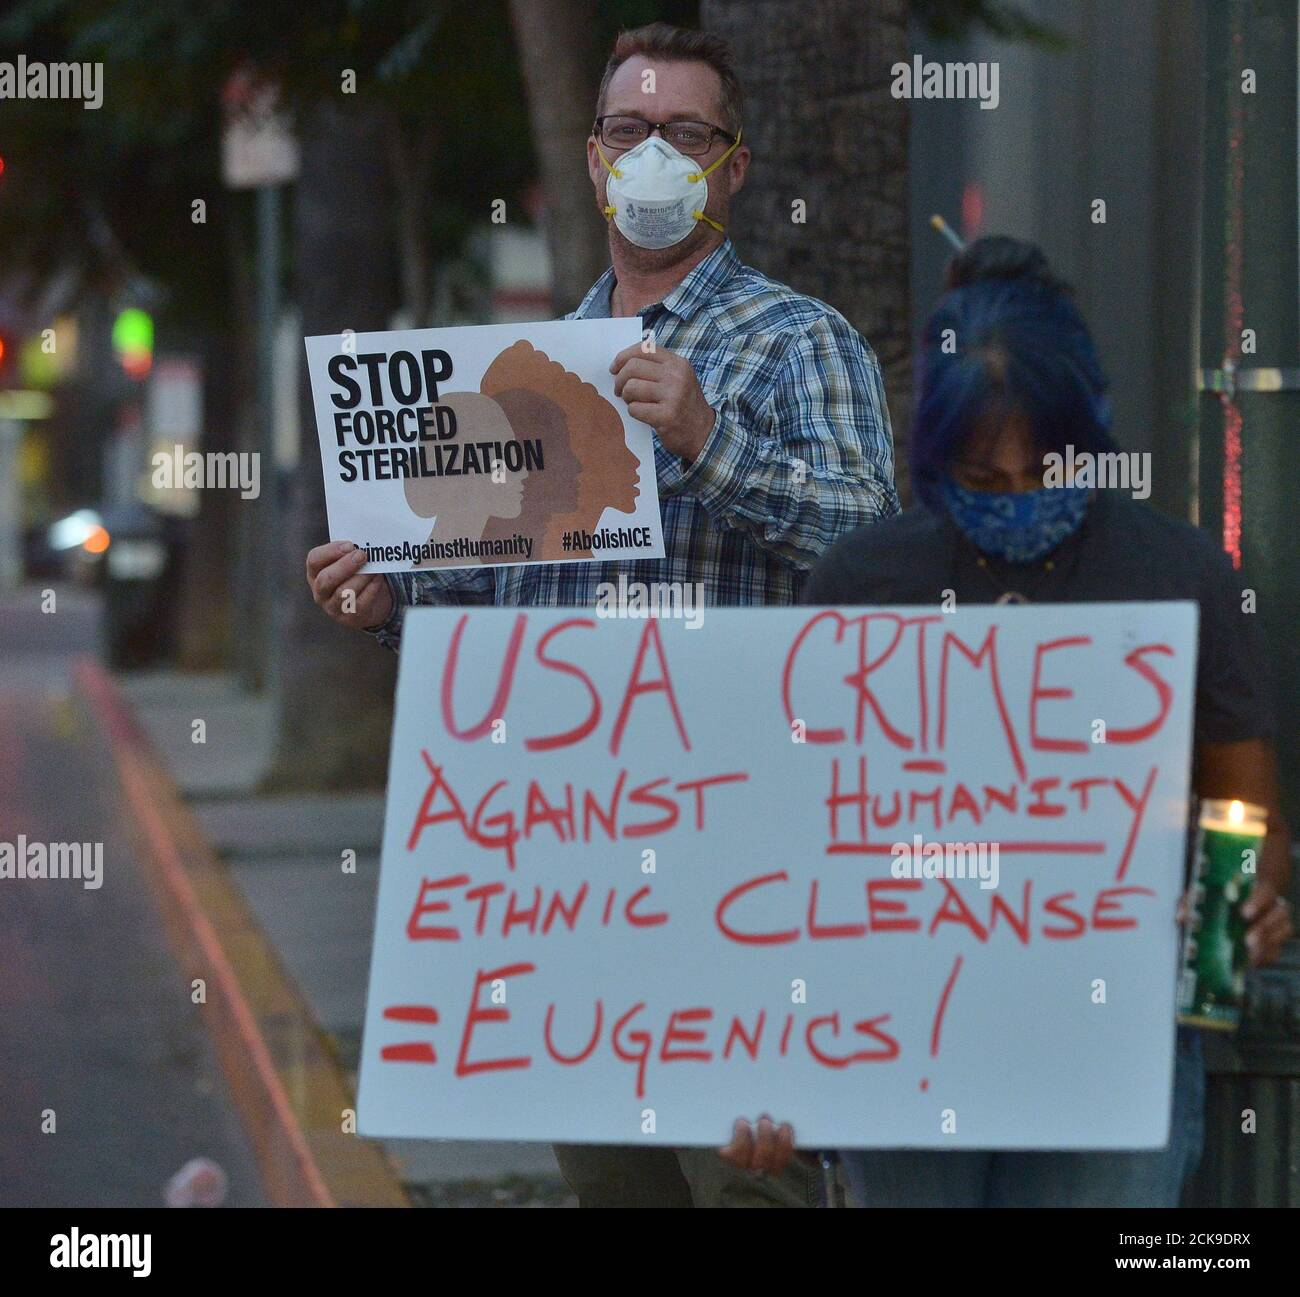 Los Angeles, United States. 15th Sep, 2020. A small group of activists protest the alleged incidents of negligence and abuse, like forced hysterectomies for women at a holding facility in Georgia, outside CNN in the Hollywood section of Los Angeles on Tuesday, September 15, 2020. Human rights groups and whistle-blower Dawn Wooten, a nurse who worked at the Ocilla, Ga. private detention center that houses migrants for U.S. Immigration and Customs Enforcement, condemned the Trump administration for their treatment. Photo by Jim Ruymen/UPI Credit: UPI/Alamy Live News Stock Photo